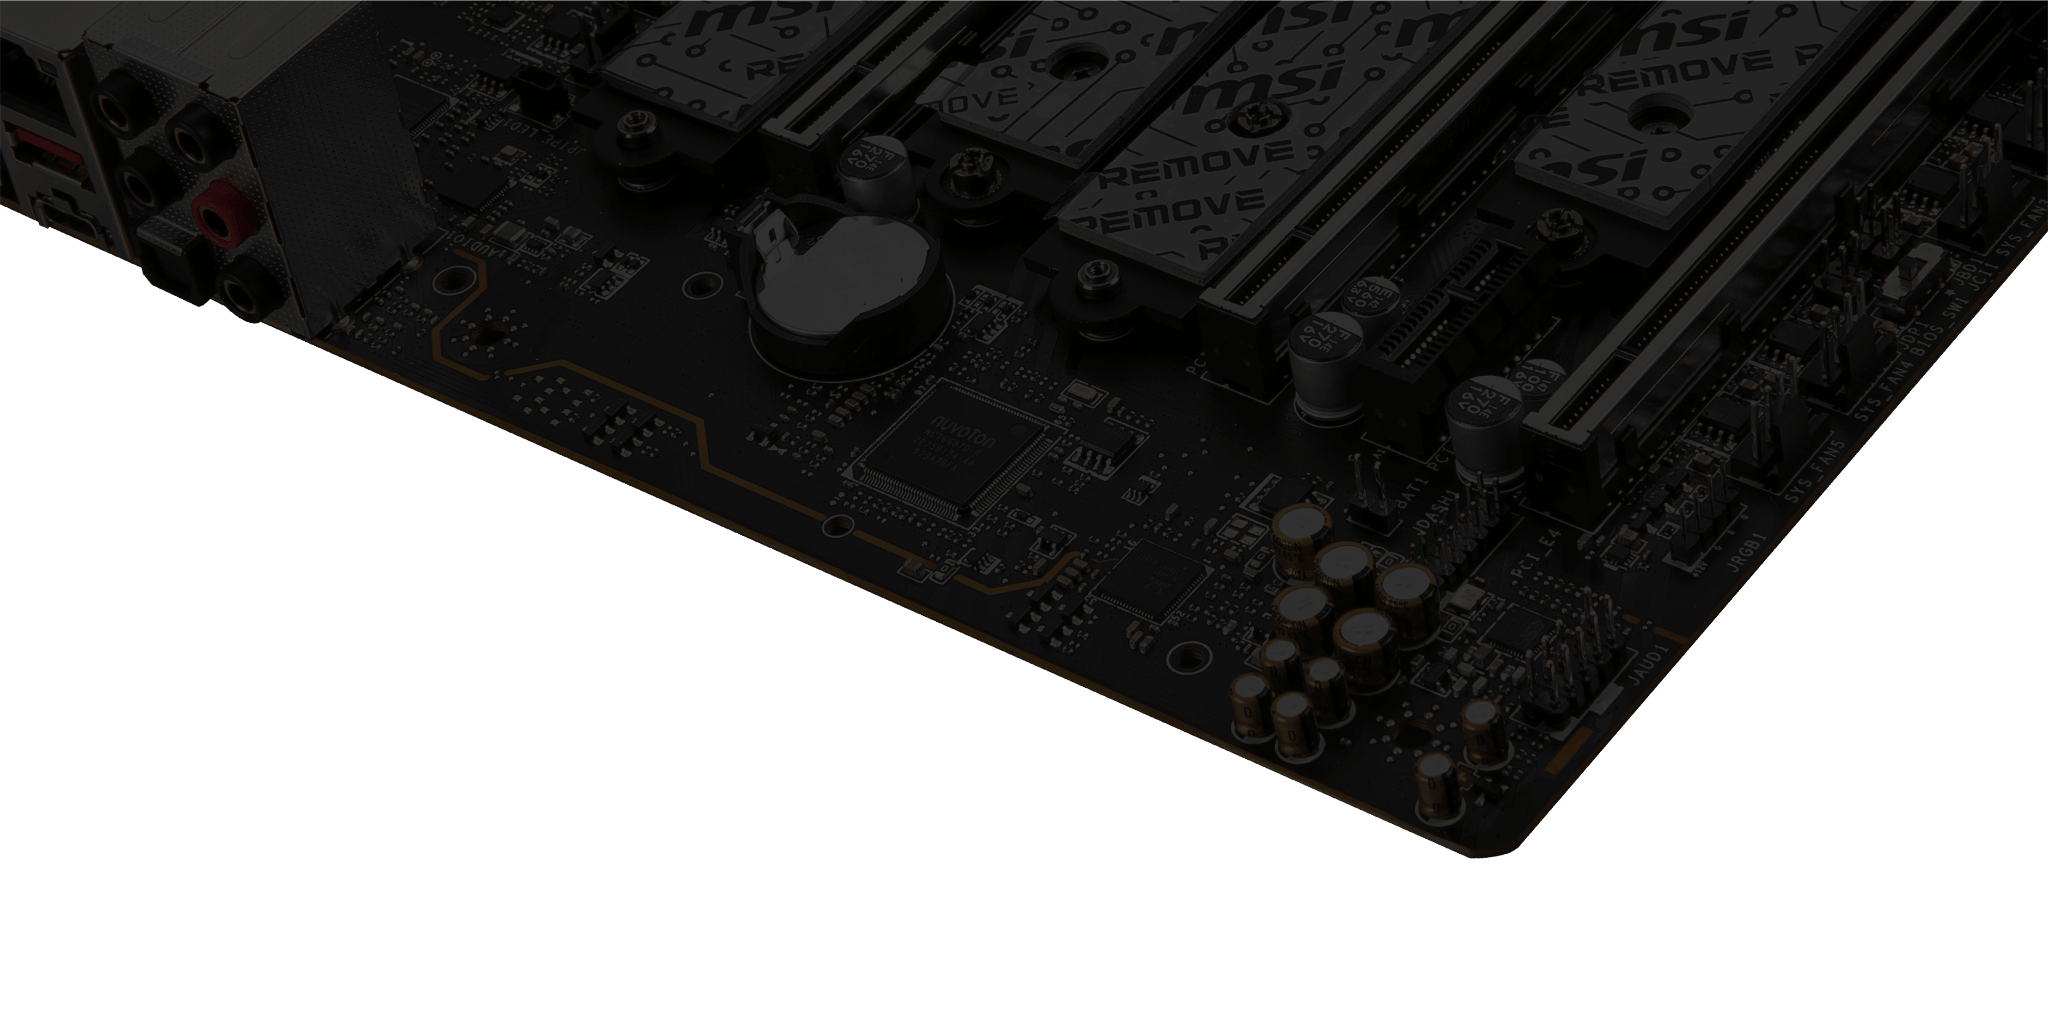 MSI X570S Motherboard More Forceful Audio Boost5 HD-1